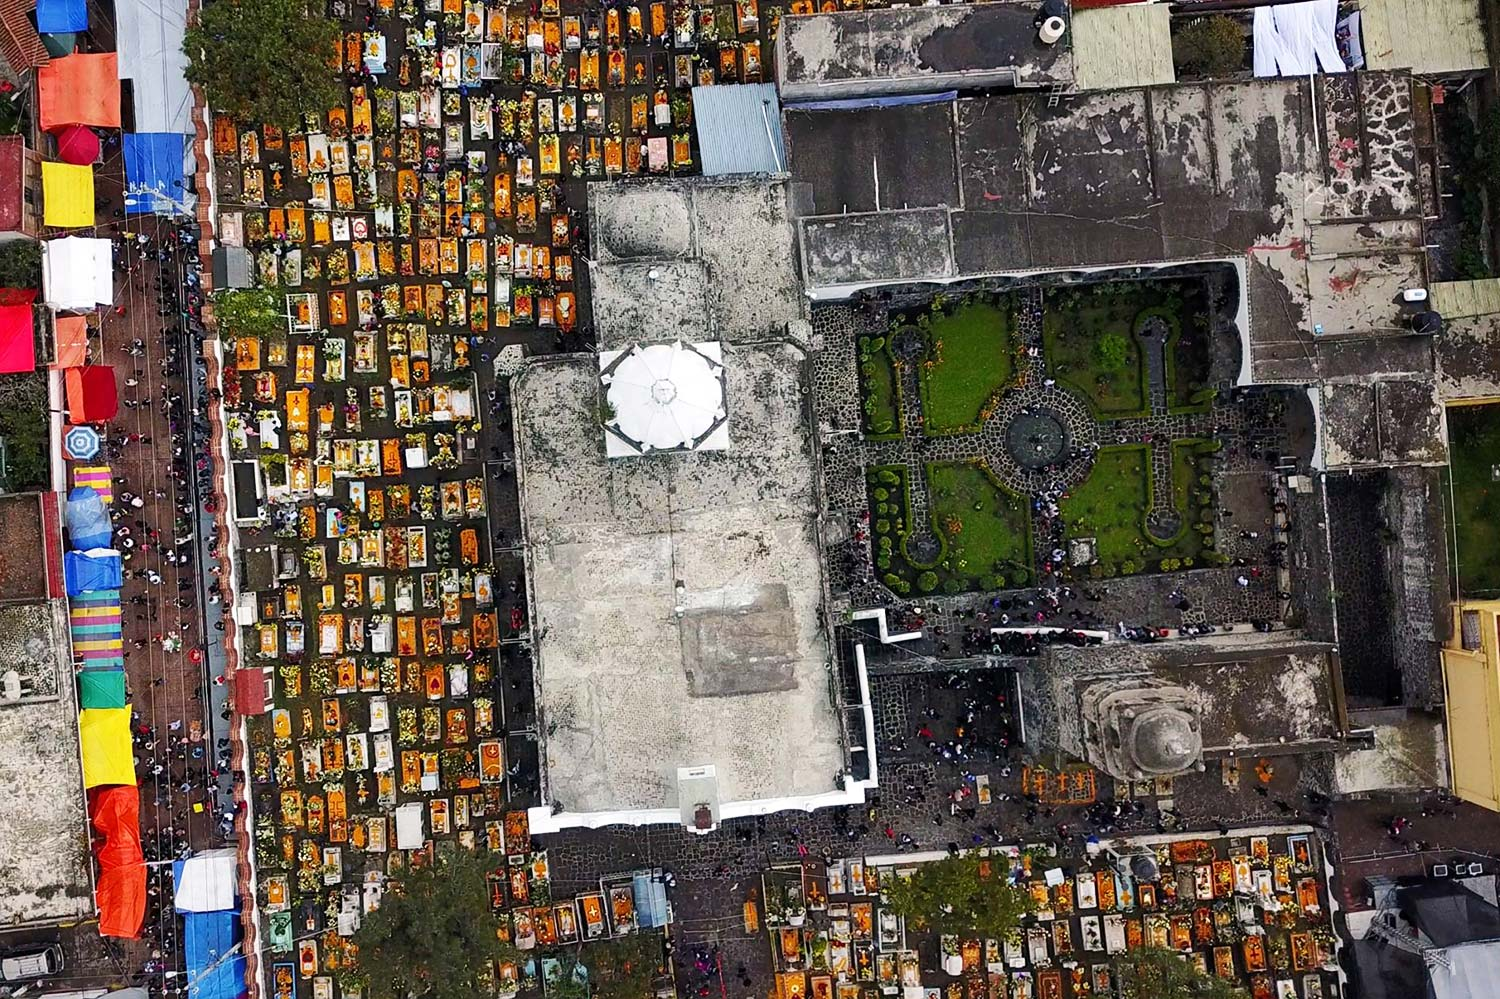 A view of the graveyard in Mixquic from above